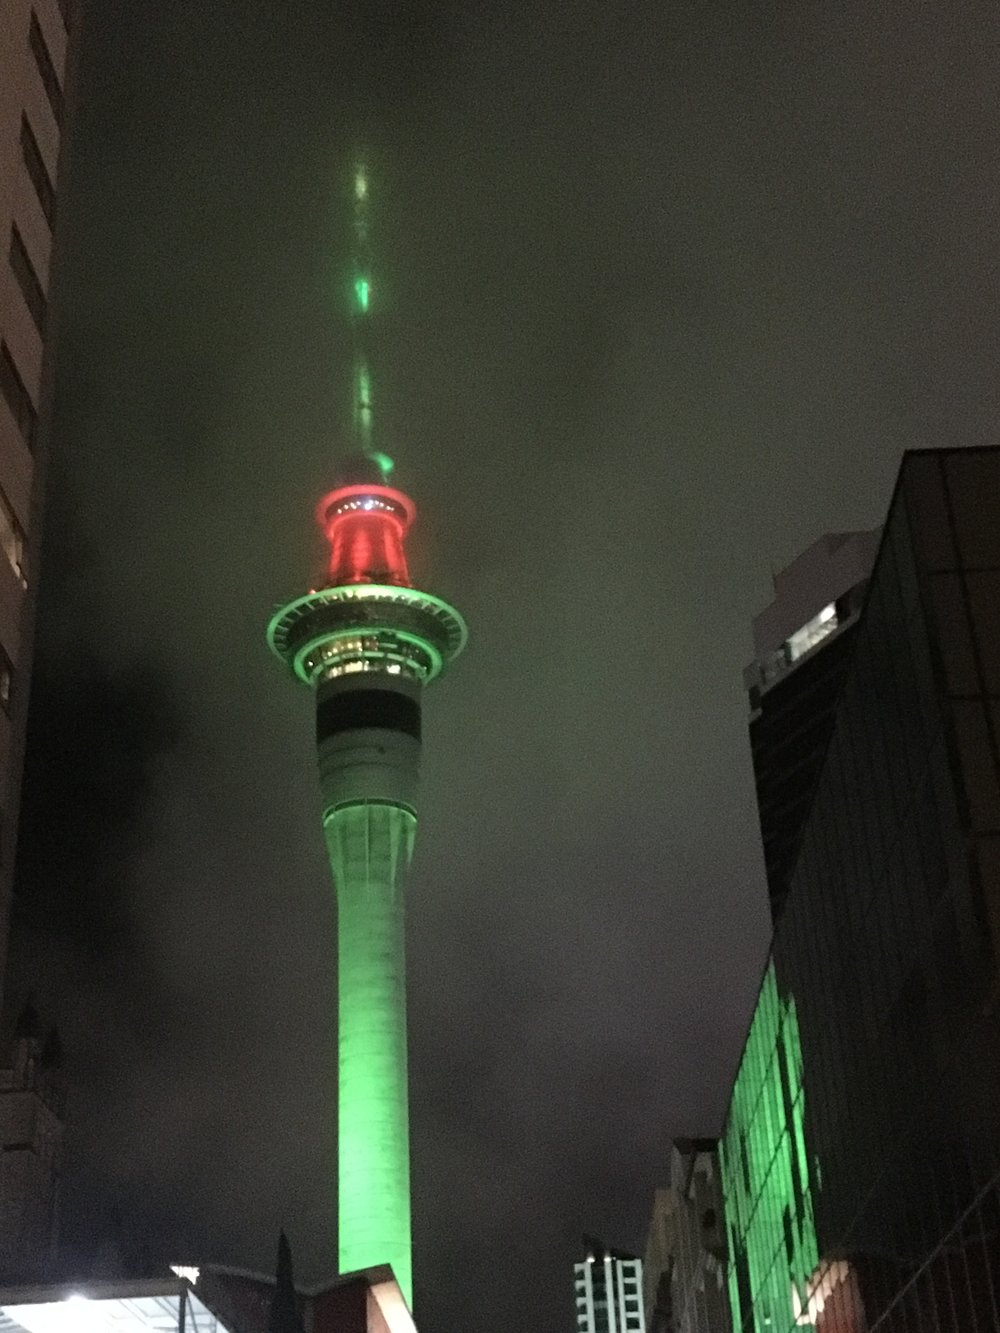 Sky City tower lit up for the Holidays.